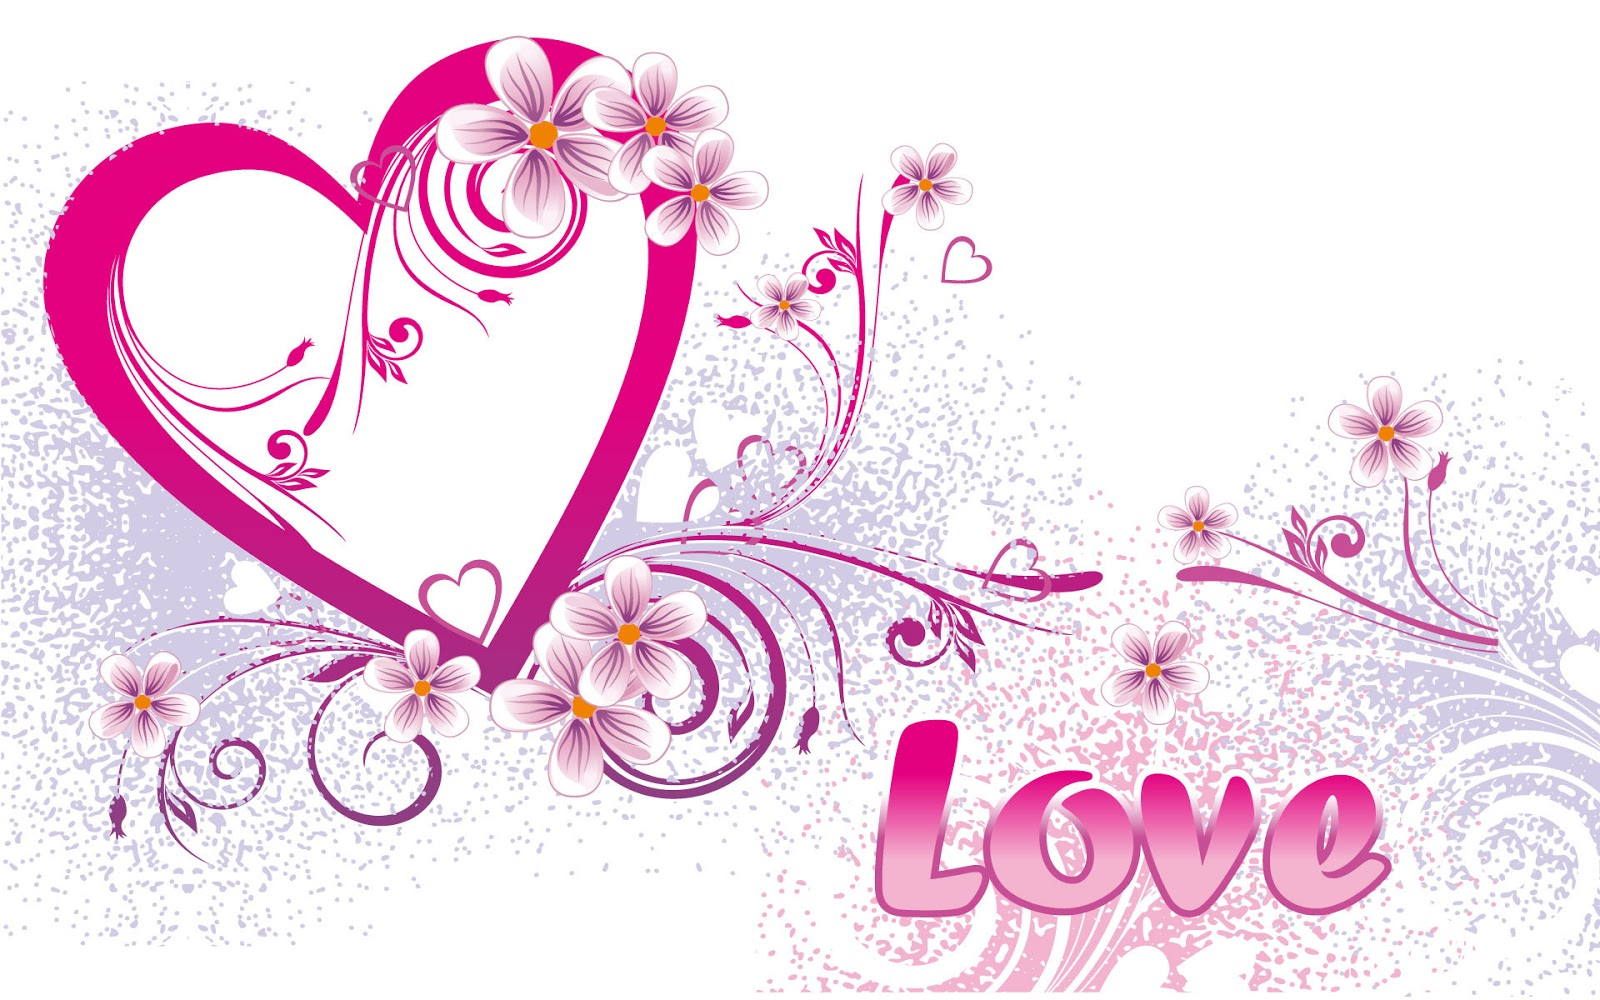 Love You All Wallpaper : i love you 2 HD wallpapers for Valentines day 2016